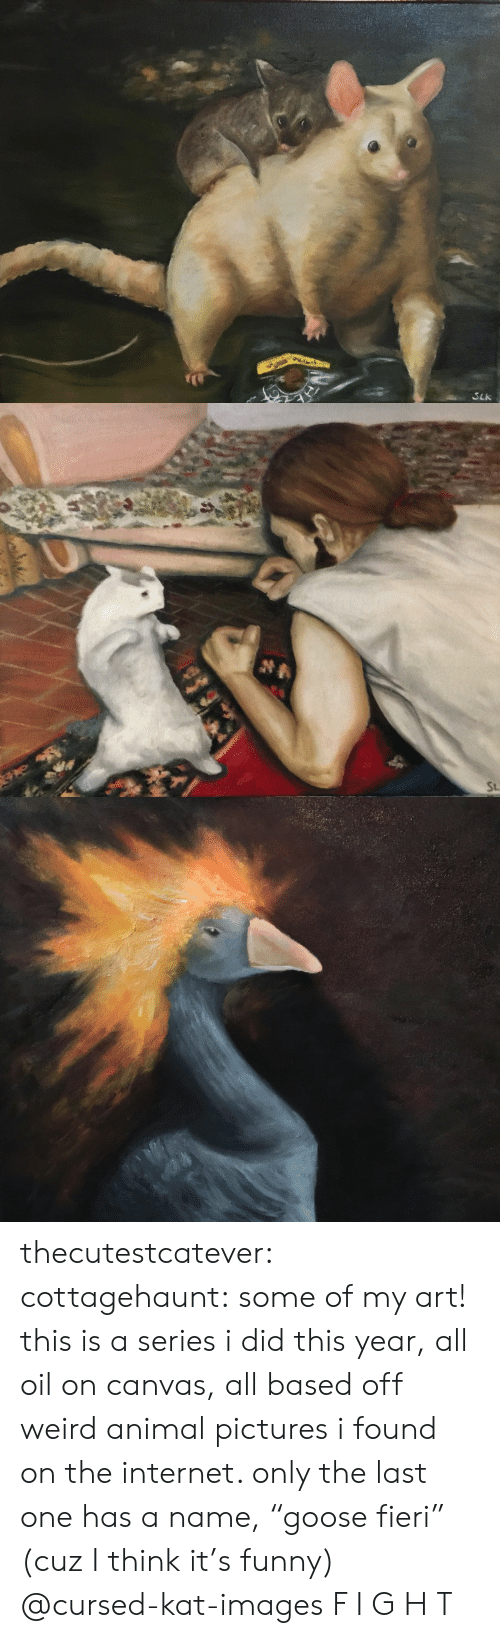 """Funny, Internet, and Tumblr: SLk   St thecutestcatever:  cottagehaunt:  some of my art! this is a series i did this year, all oil on canvas, all based off weird animal pictures i found on the internet. only the last one has a name,""""goose fieri"""" (cuz I think it's funny)  @cursed-kat-images   F I G H T"""